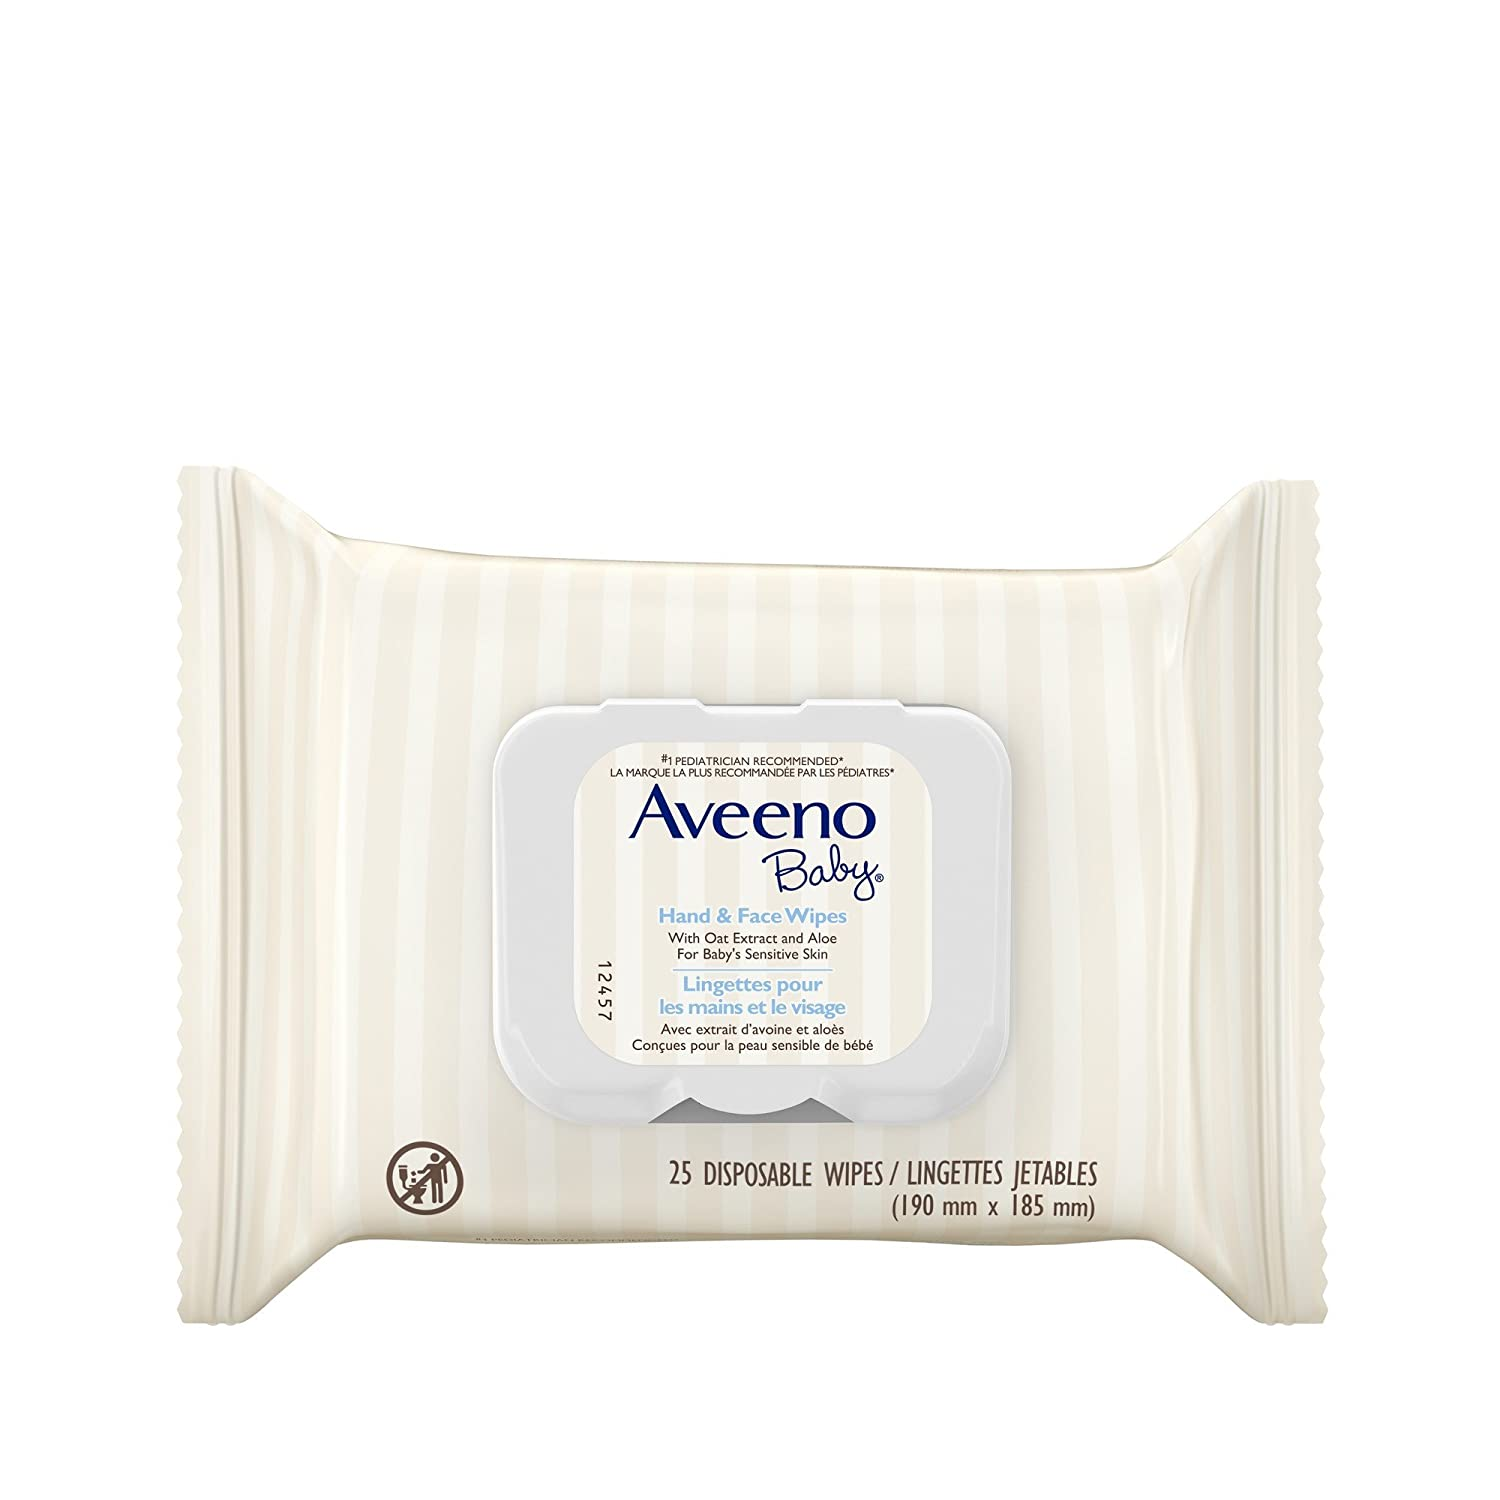 Aveeno Baby Wipes for Hand and Face with Oat Extract and Aloe for Sensitive Skin, 25 wipes Johnson & Johnson